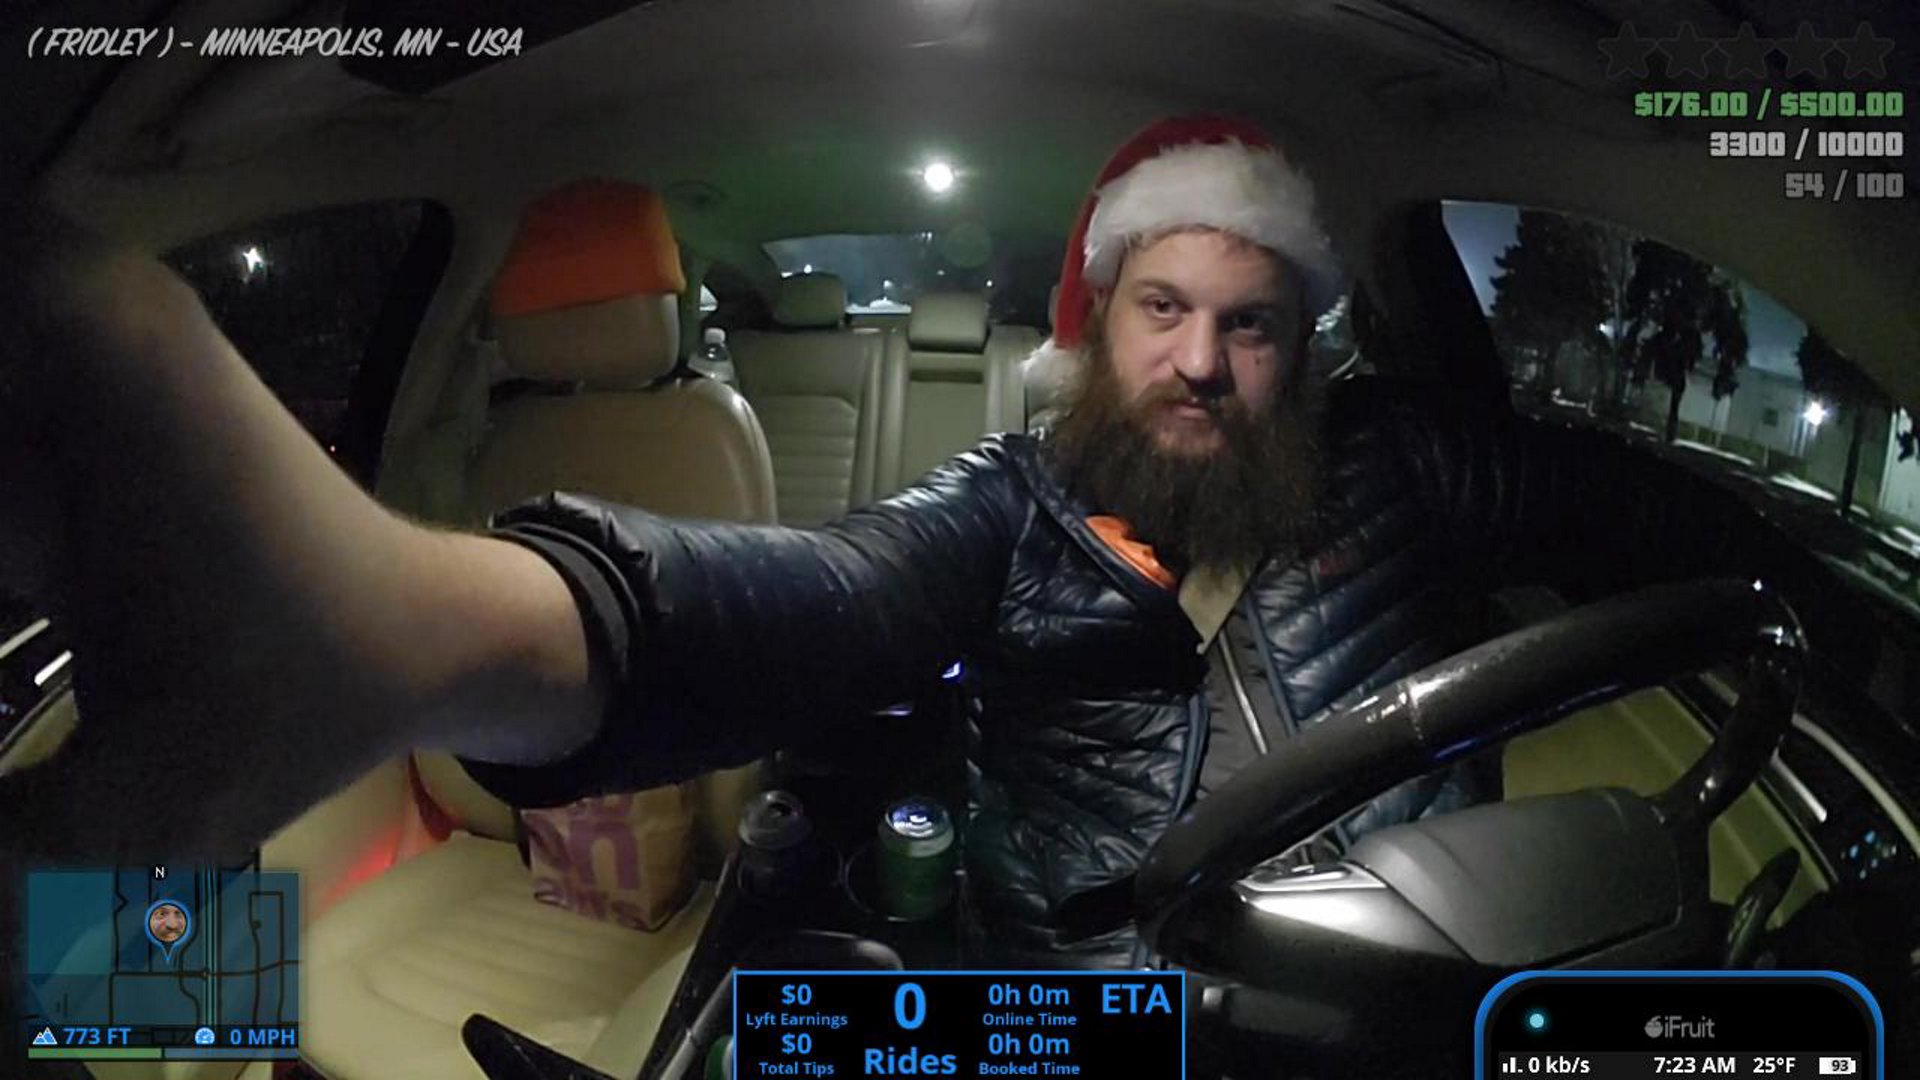 rideshare-roadcam-pov-mn-usa-6k-fishcon-plunges-help-just-chatting-0901-https-t-co-ftol8ezdmw-https-t-co-mf4re3igbd